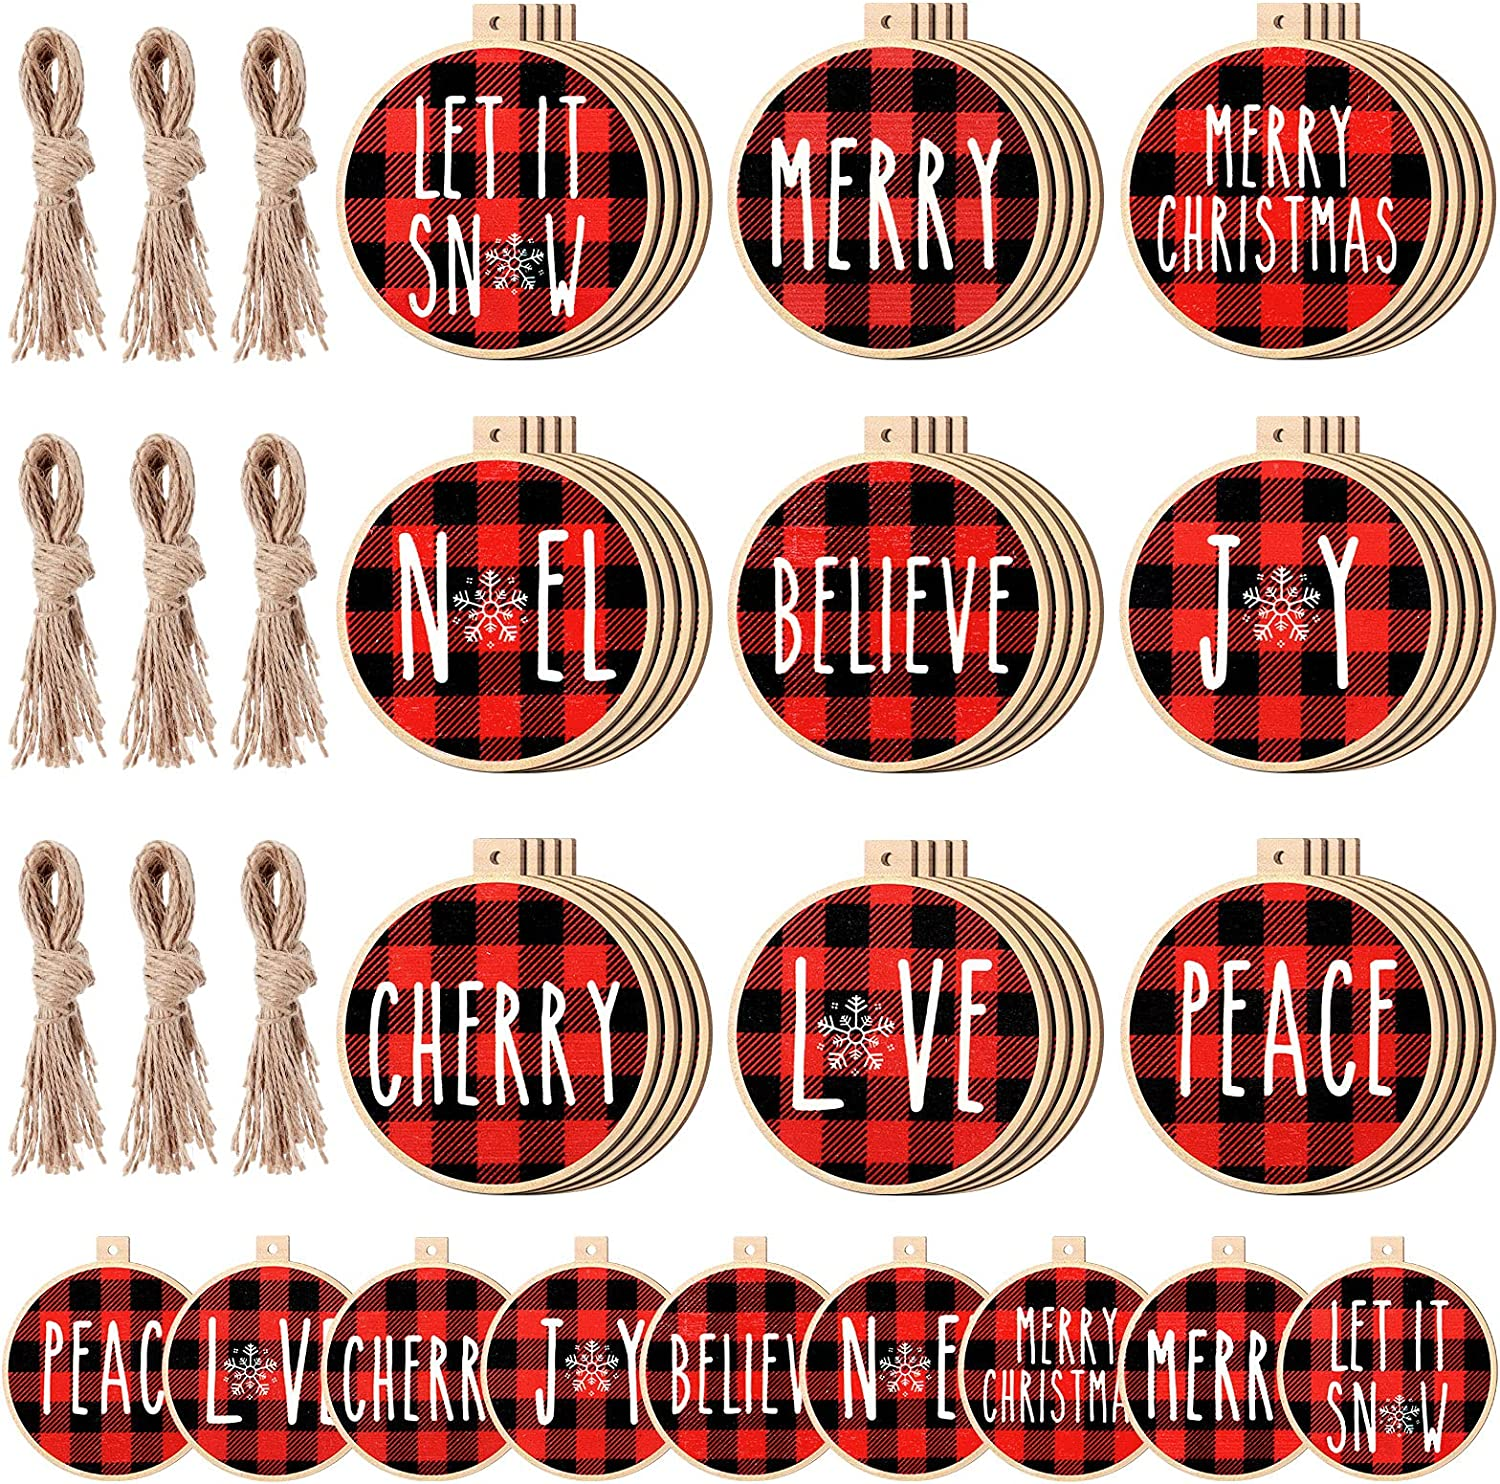 36 Pieces Christmas Ornament Wooden Christmas Ornament Xmas Tree Hanging Tag Wooden Christmas Tree Decorations Rustic Hanging Decor for Holiday Xmas Party (Red-Black,Buffalo Plaid)